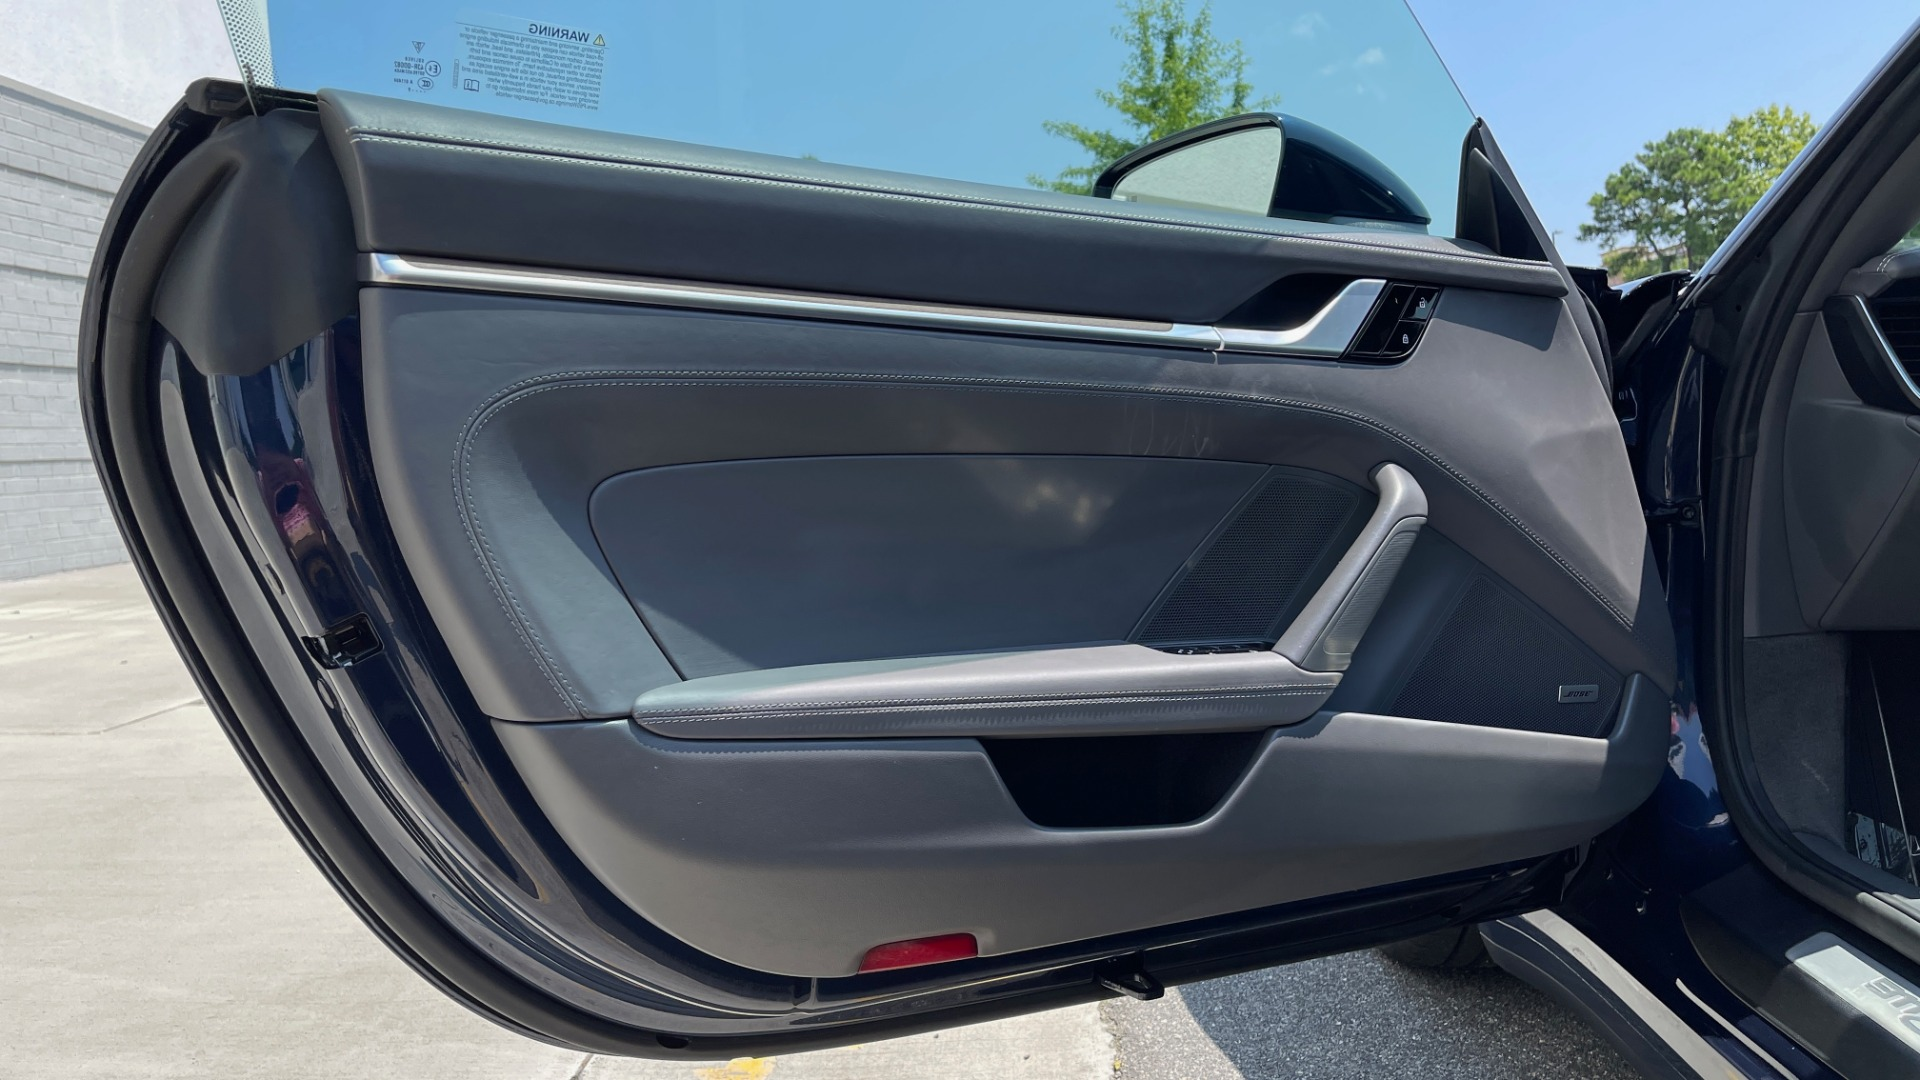 Used 2020 Porsche 911 CARRERA S CABRIOLET PREMIUM SPORT / LCA / ACC / BOSE / REARVIEW for sale $159,995 at Formula Imports in Charlotte NC 28227 38